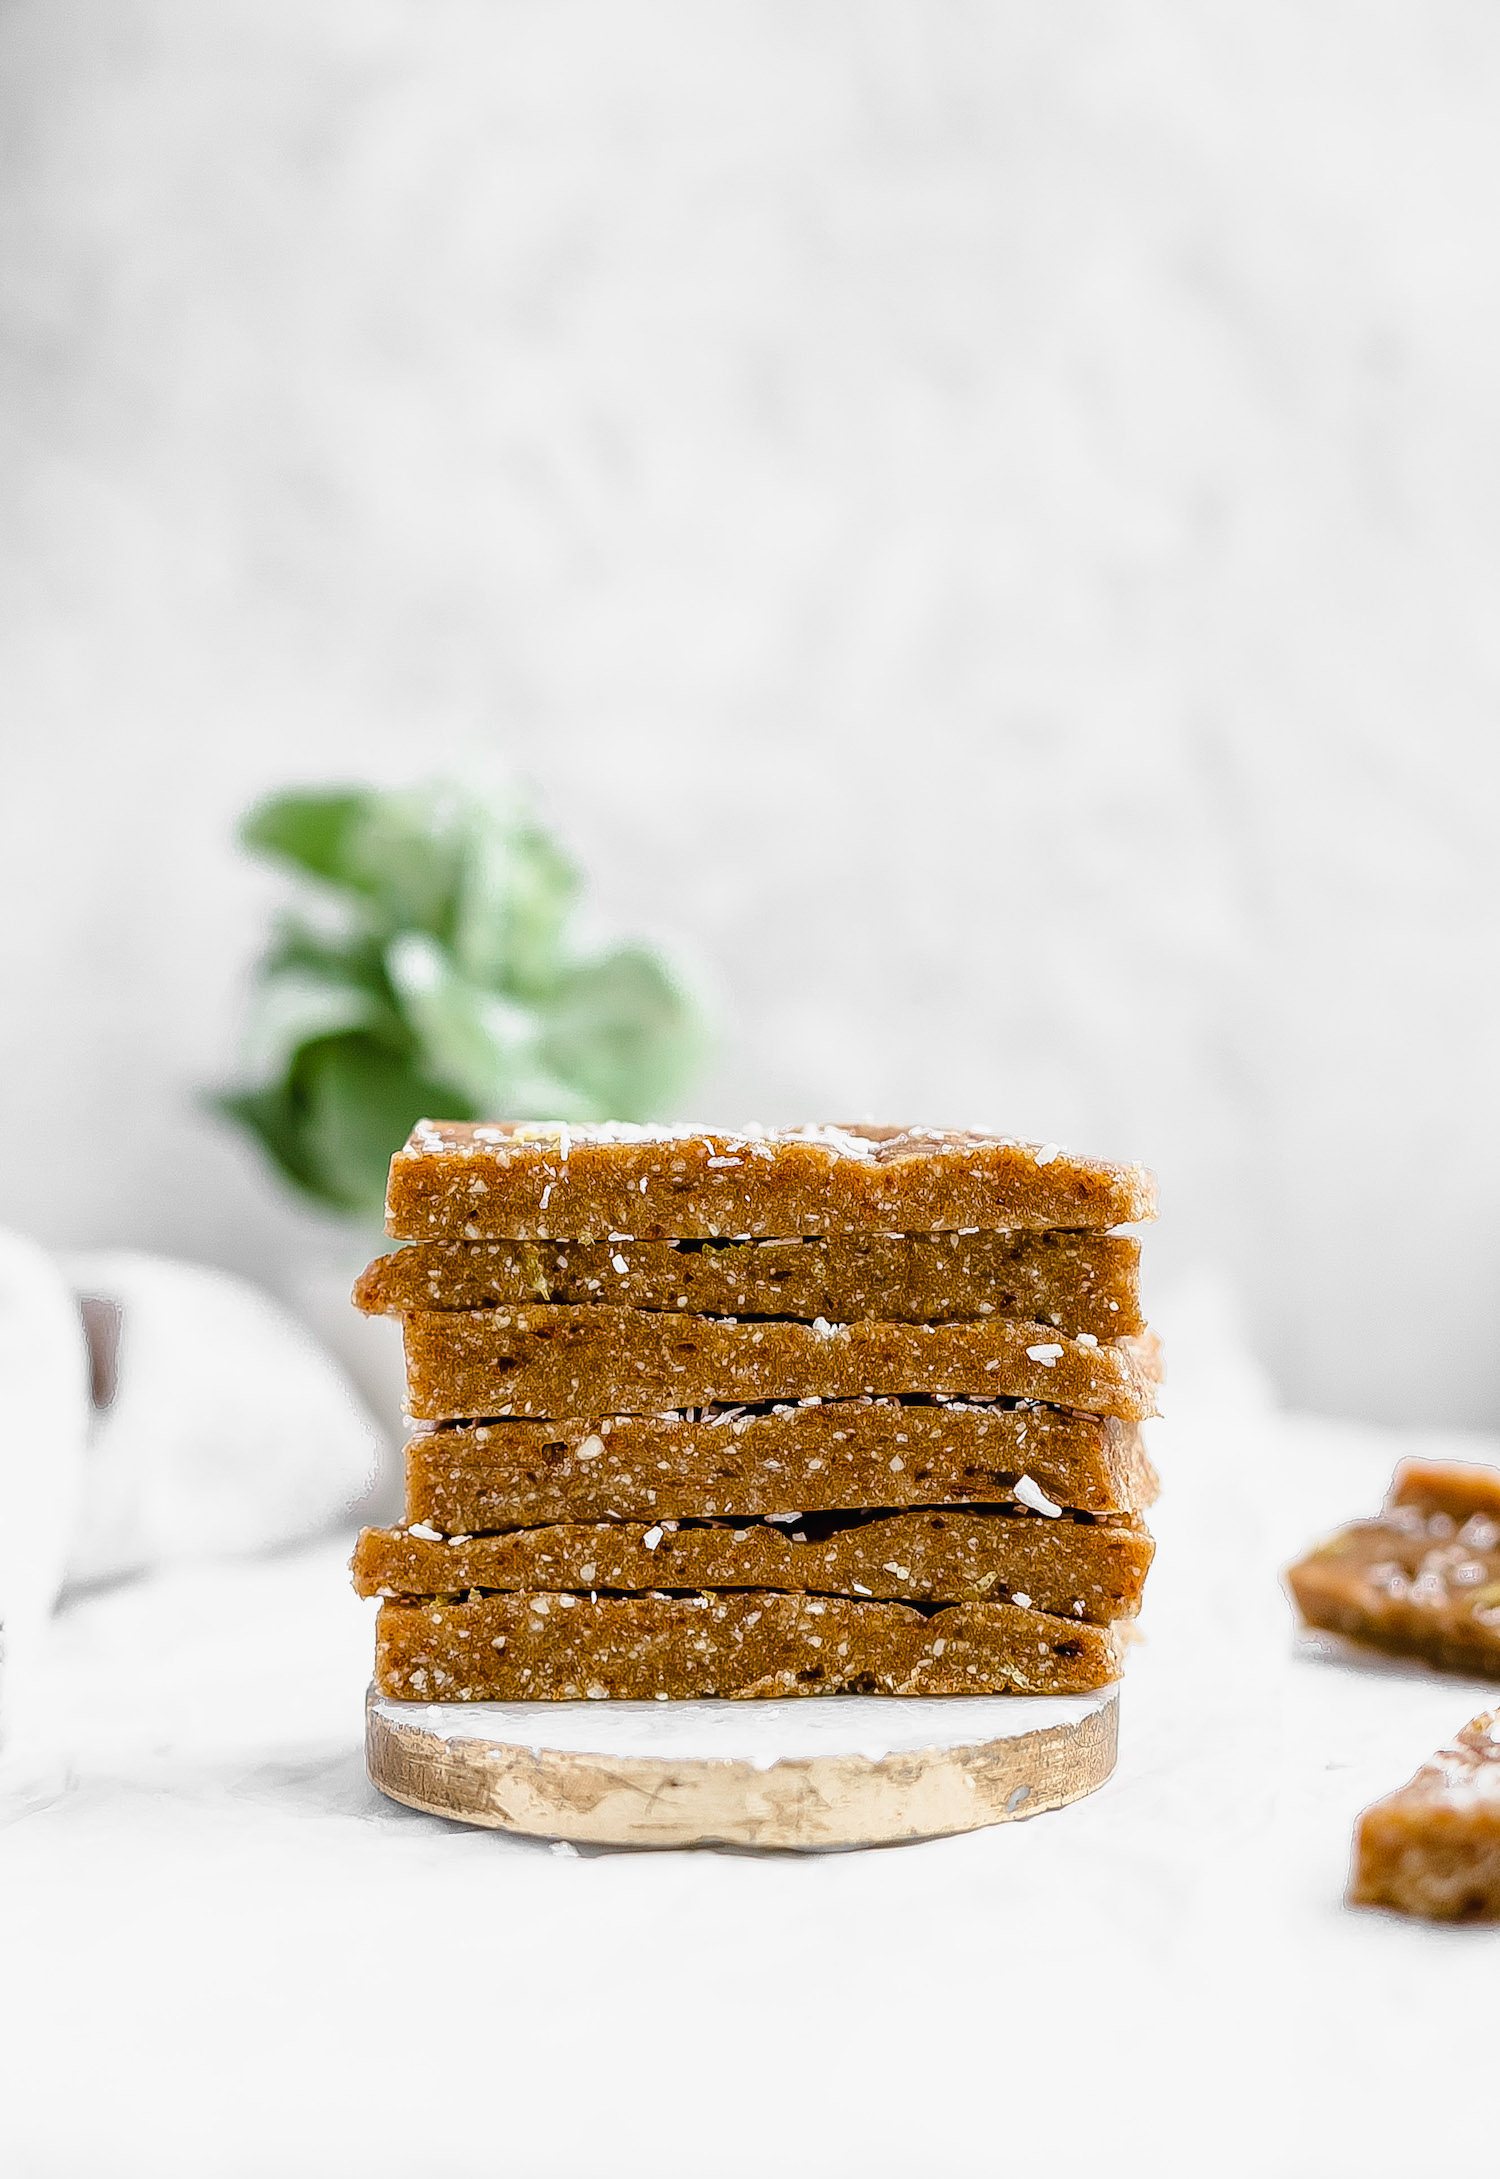 Raw Cashew Coconut Tahini Bars: chewy, rich, nutrient-packed bars made with cashews, dates, coconut, and tahini. Vegan, gluten-free, and so easy! | TrufflesandTrends.com